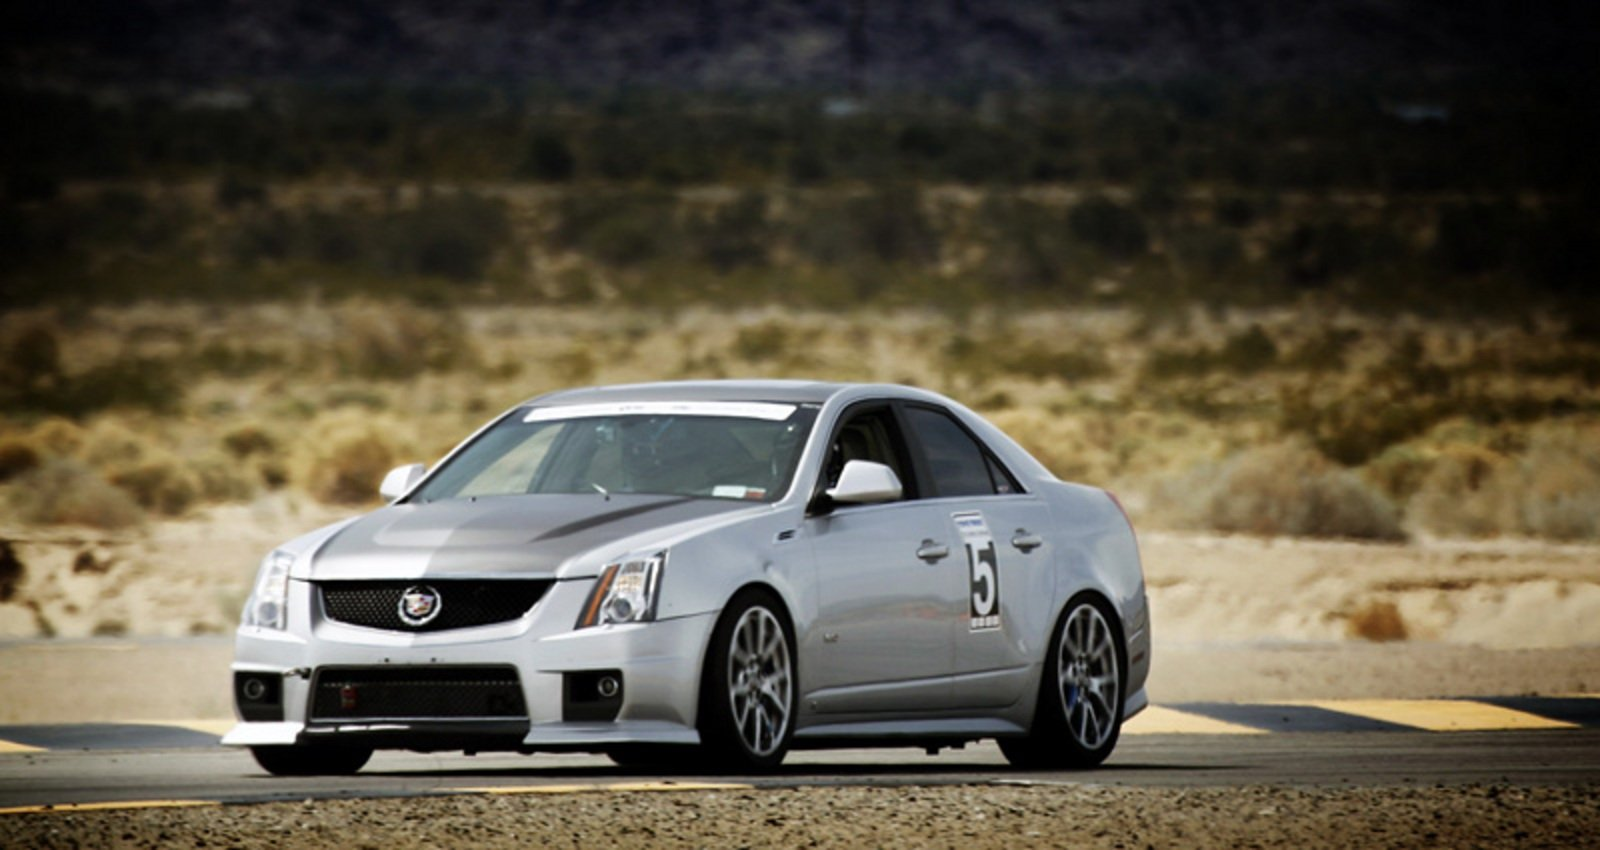 2010 cadillac cts v patriot missile by d3 cadillac review top speed. Black Bedroom Furniture Sets. Home Design Ideas